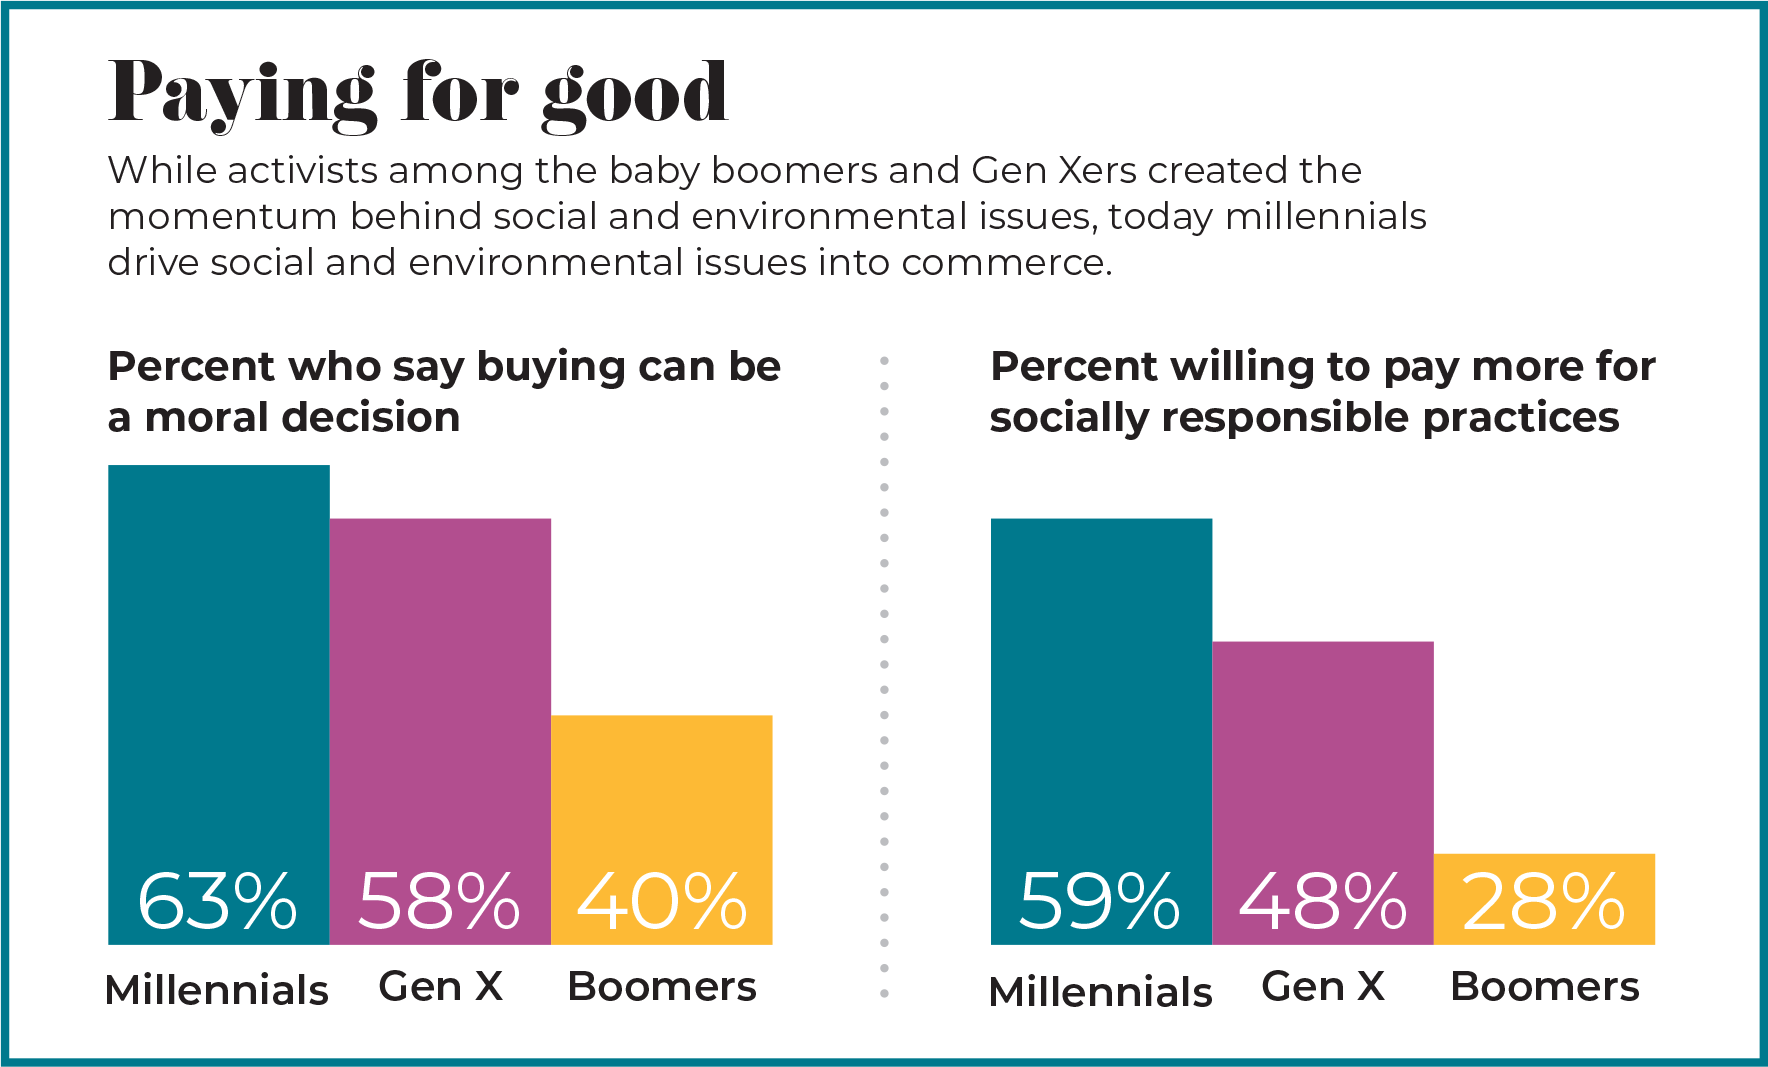 younger consumers are more likely to regard purchasing as an ethical issue with social or environmental consequences